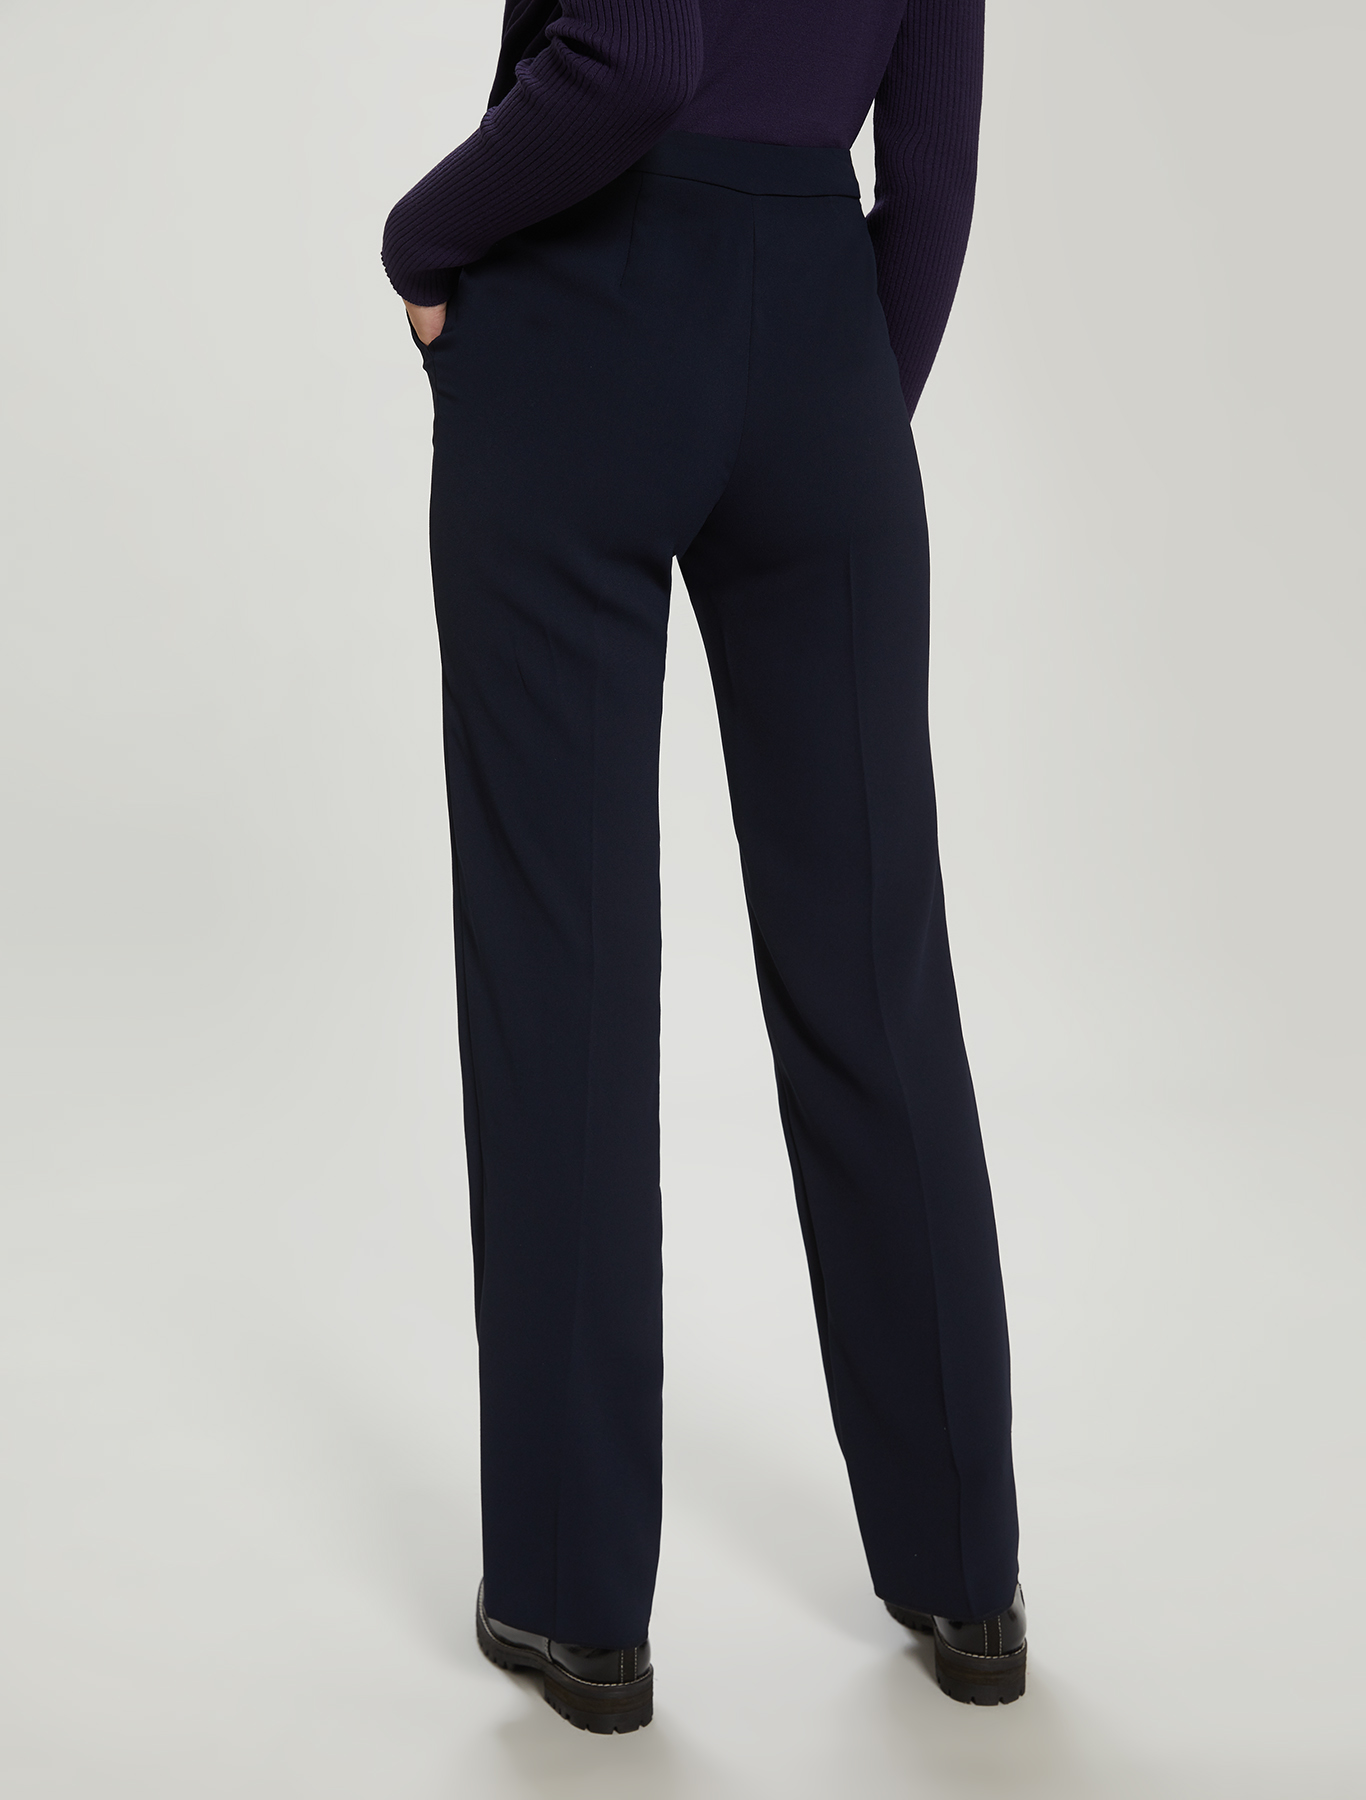 Envers satin trousers - navy blue - pennyblack